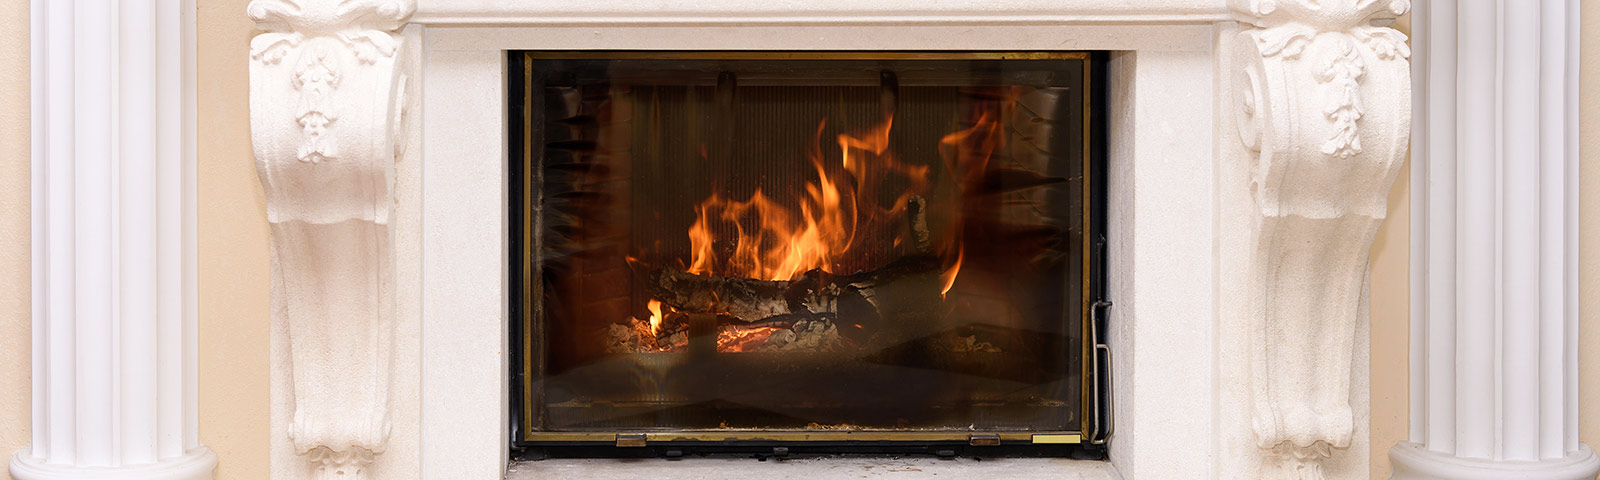 maintaining-wood-burning-fireplace